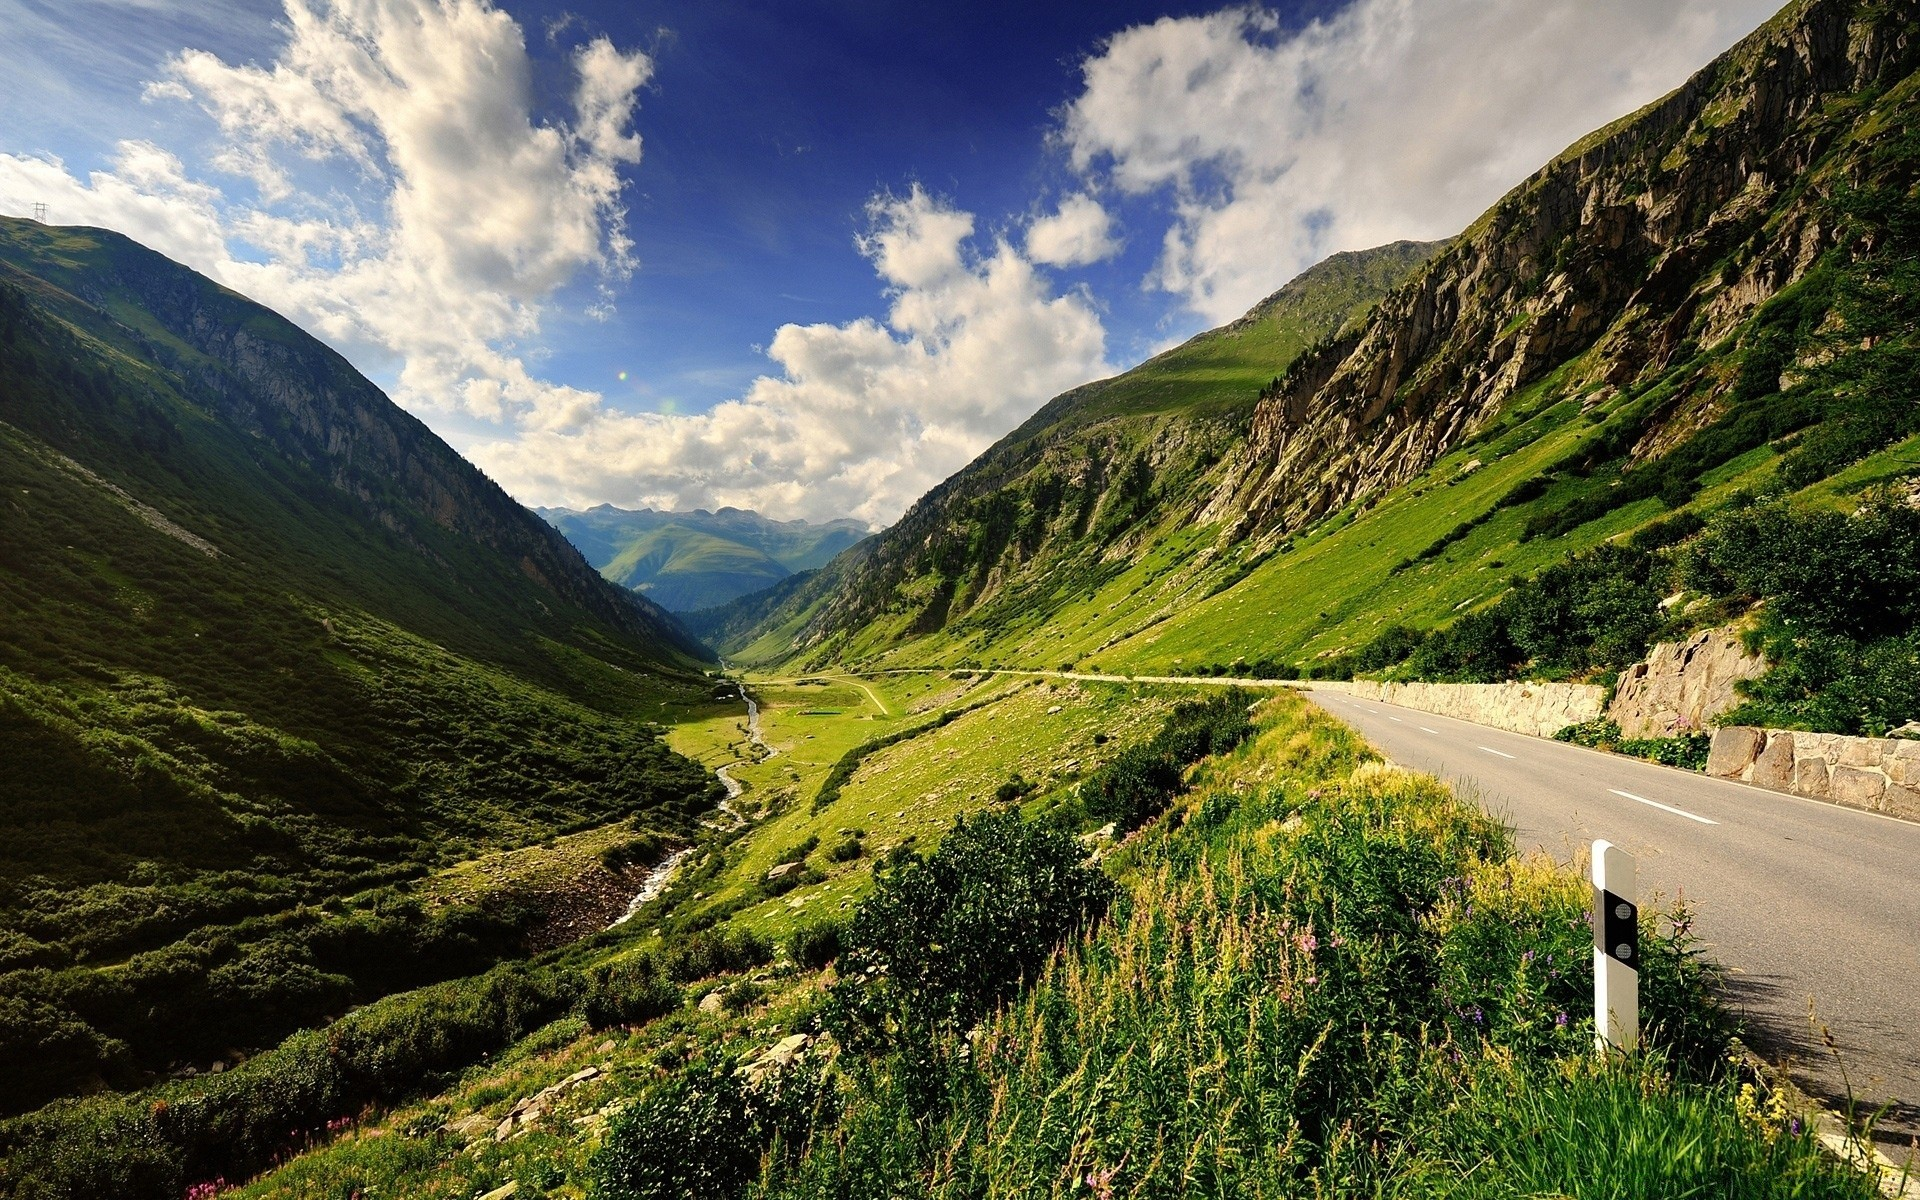 mountains travel nature mountain outdoors landscape sky grass summer road valley hill scenic countryside water